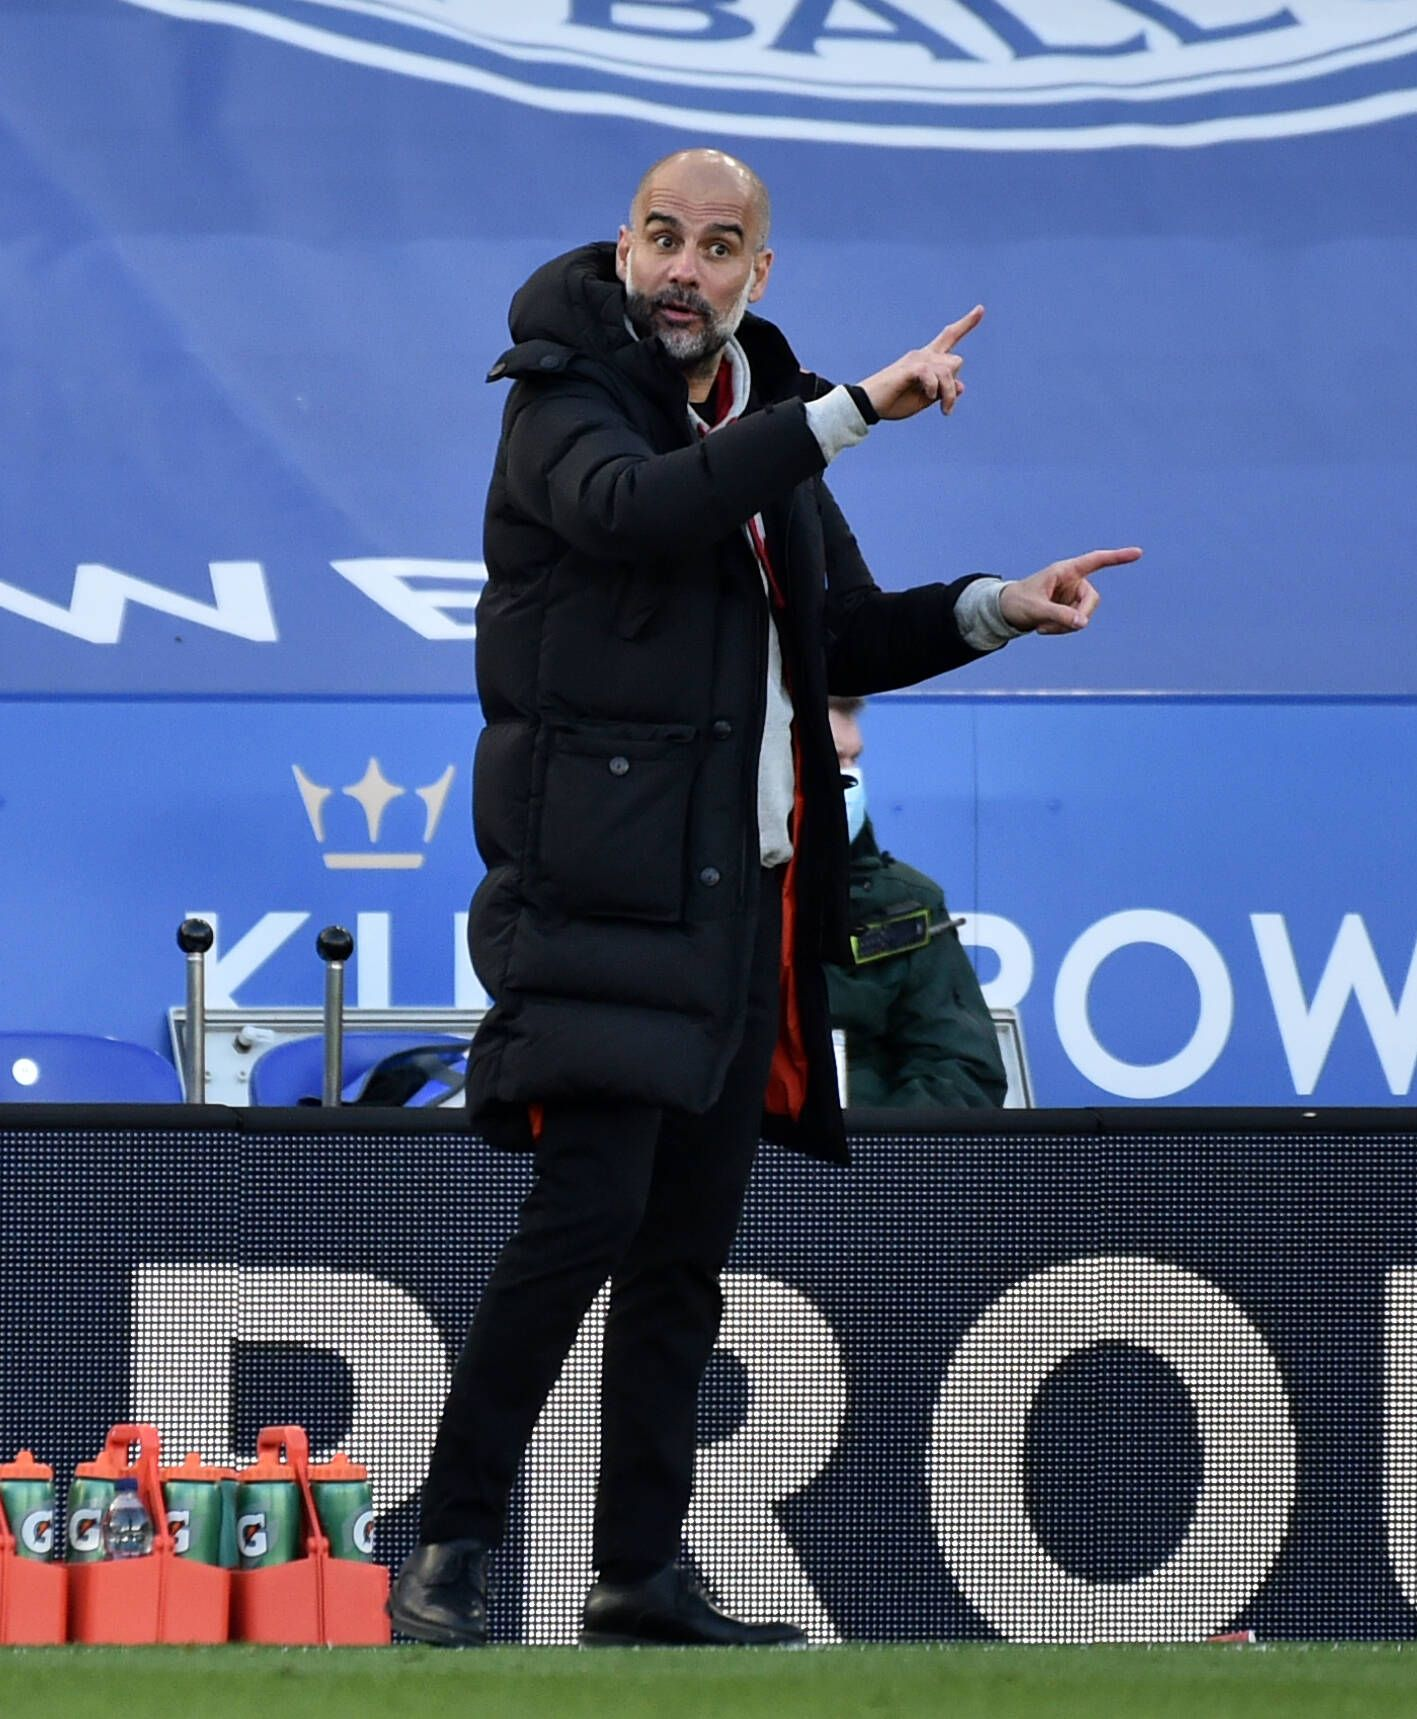 Leicester City v Manchester City - Premier League - King Power Stadium Manchester City manager Pep Guardiola gestures on